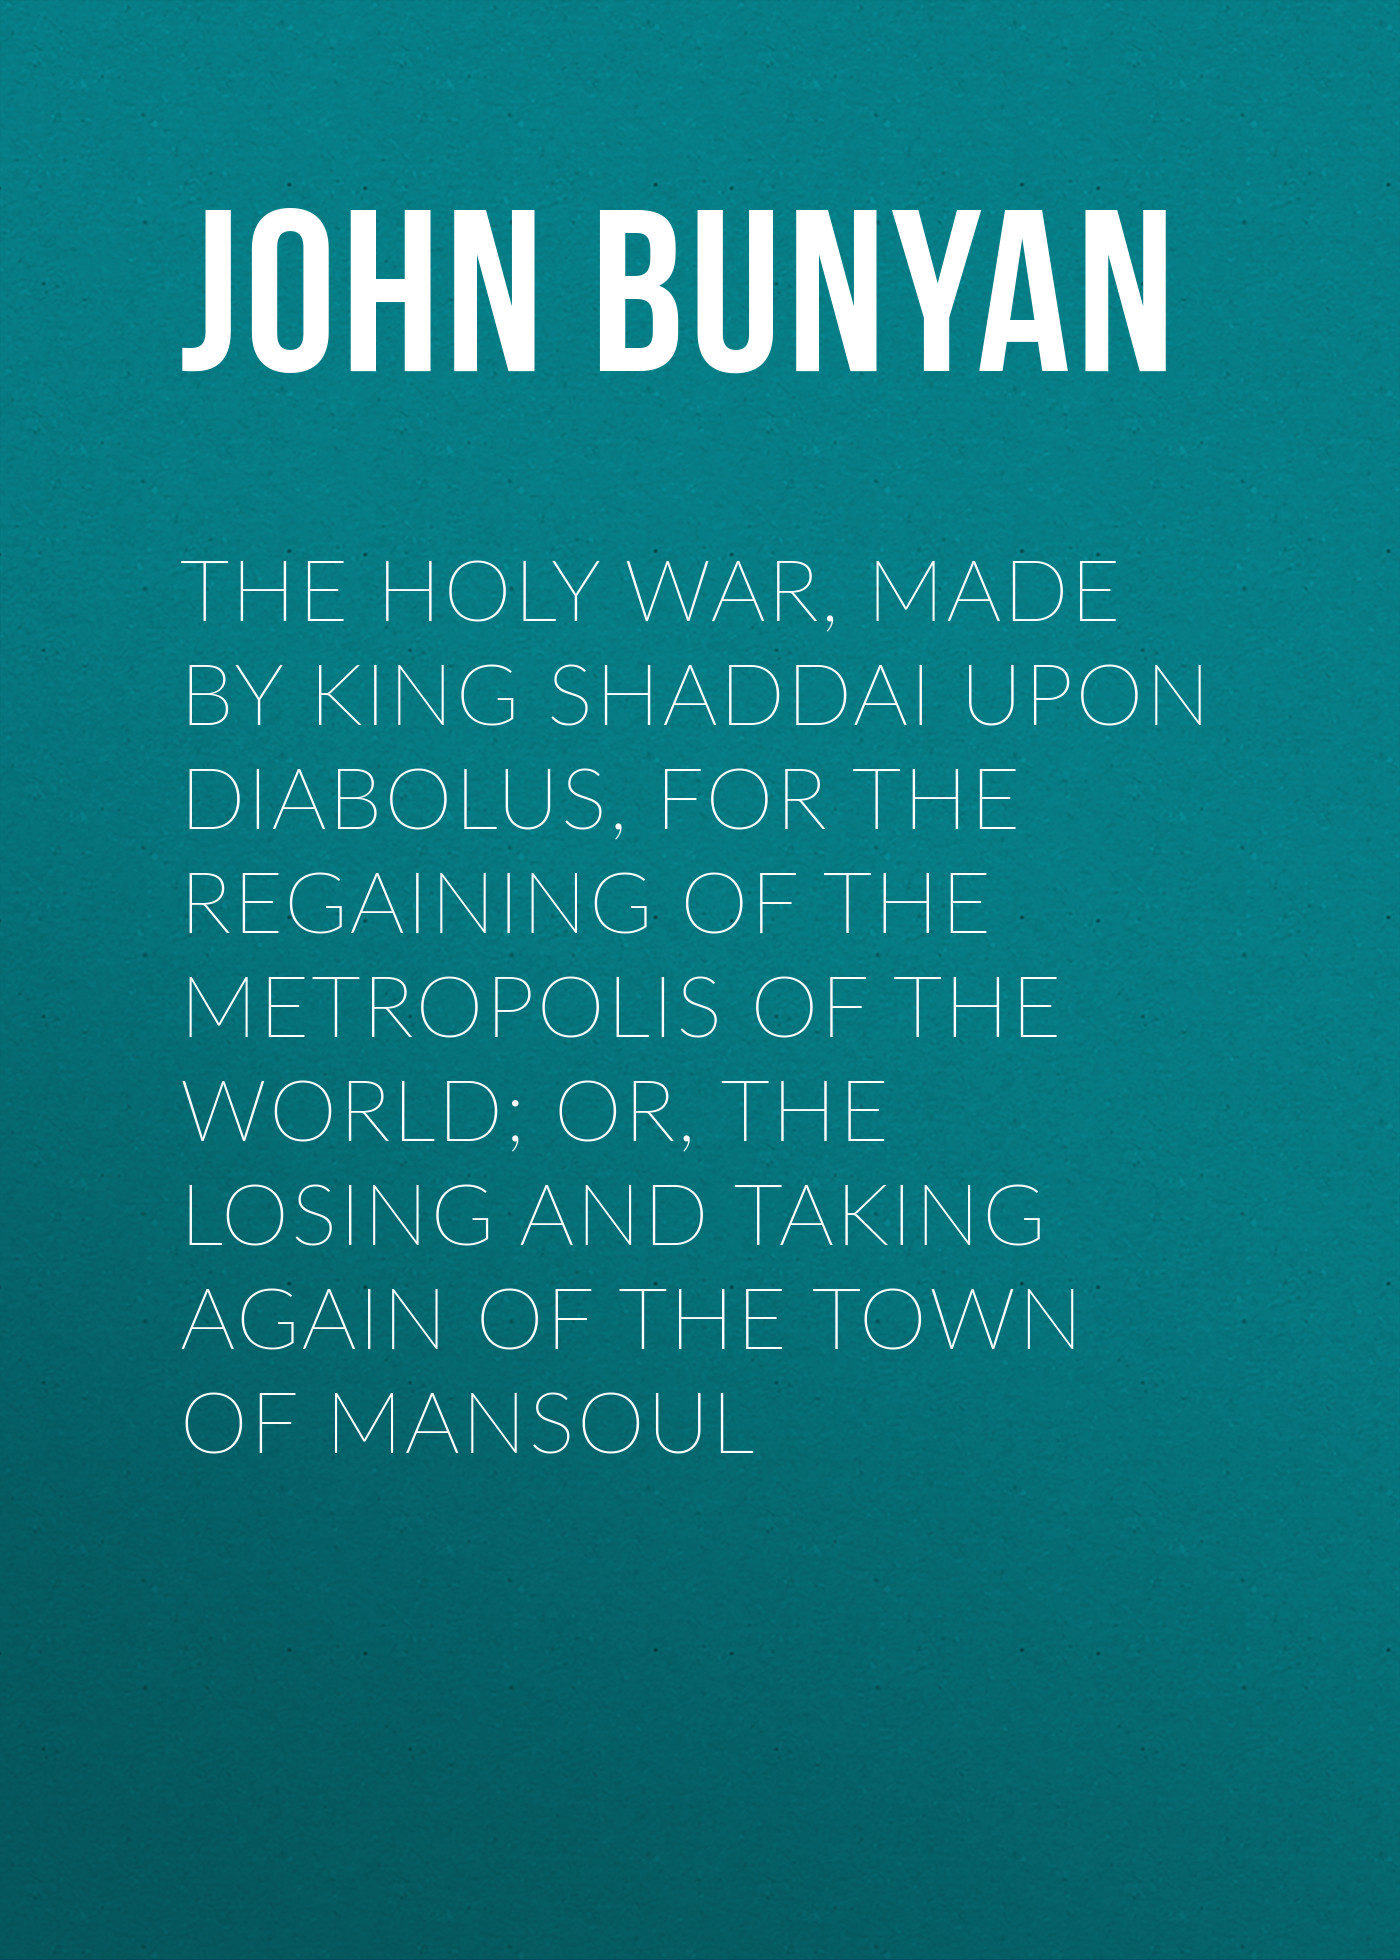 лучшая цена John Bunyan The Holy War, Made by King Shaddai Upon Diabolus, for the Regaining of the Metropolis of the World; Or, The Losing and Taking Again of the Town of Mansoul